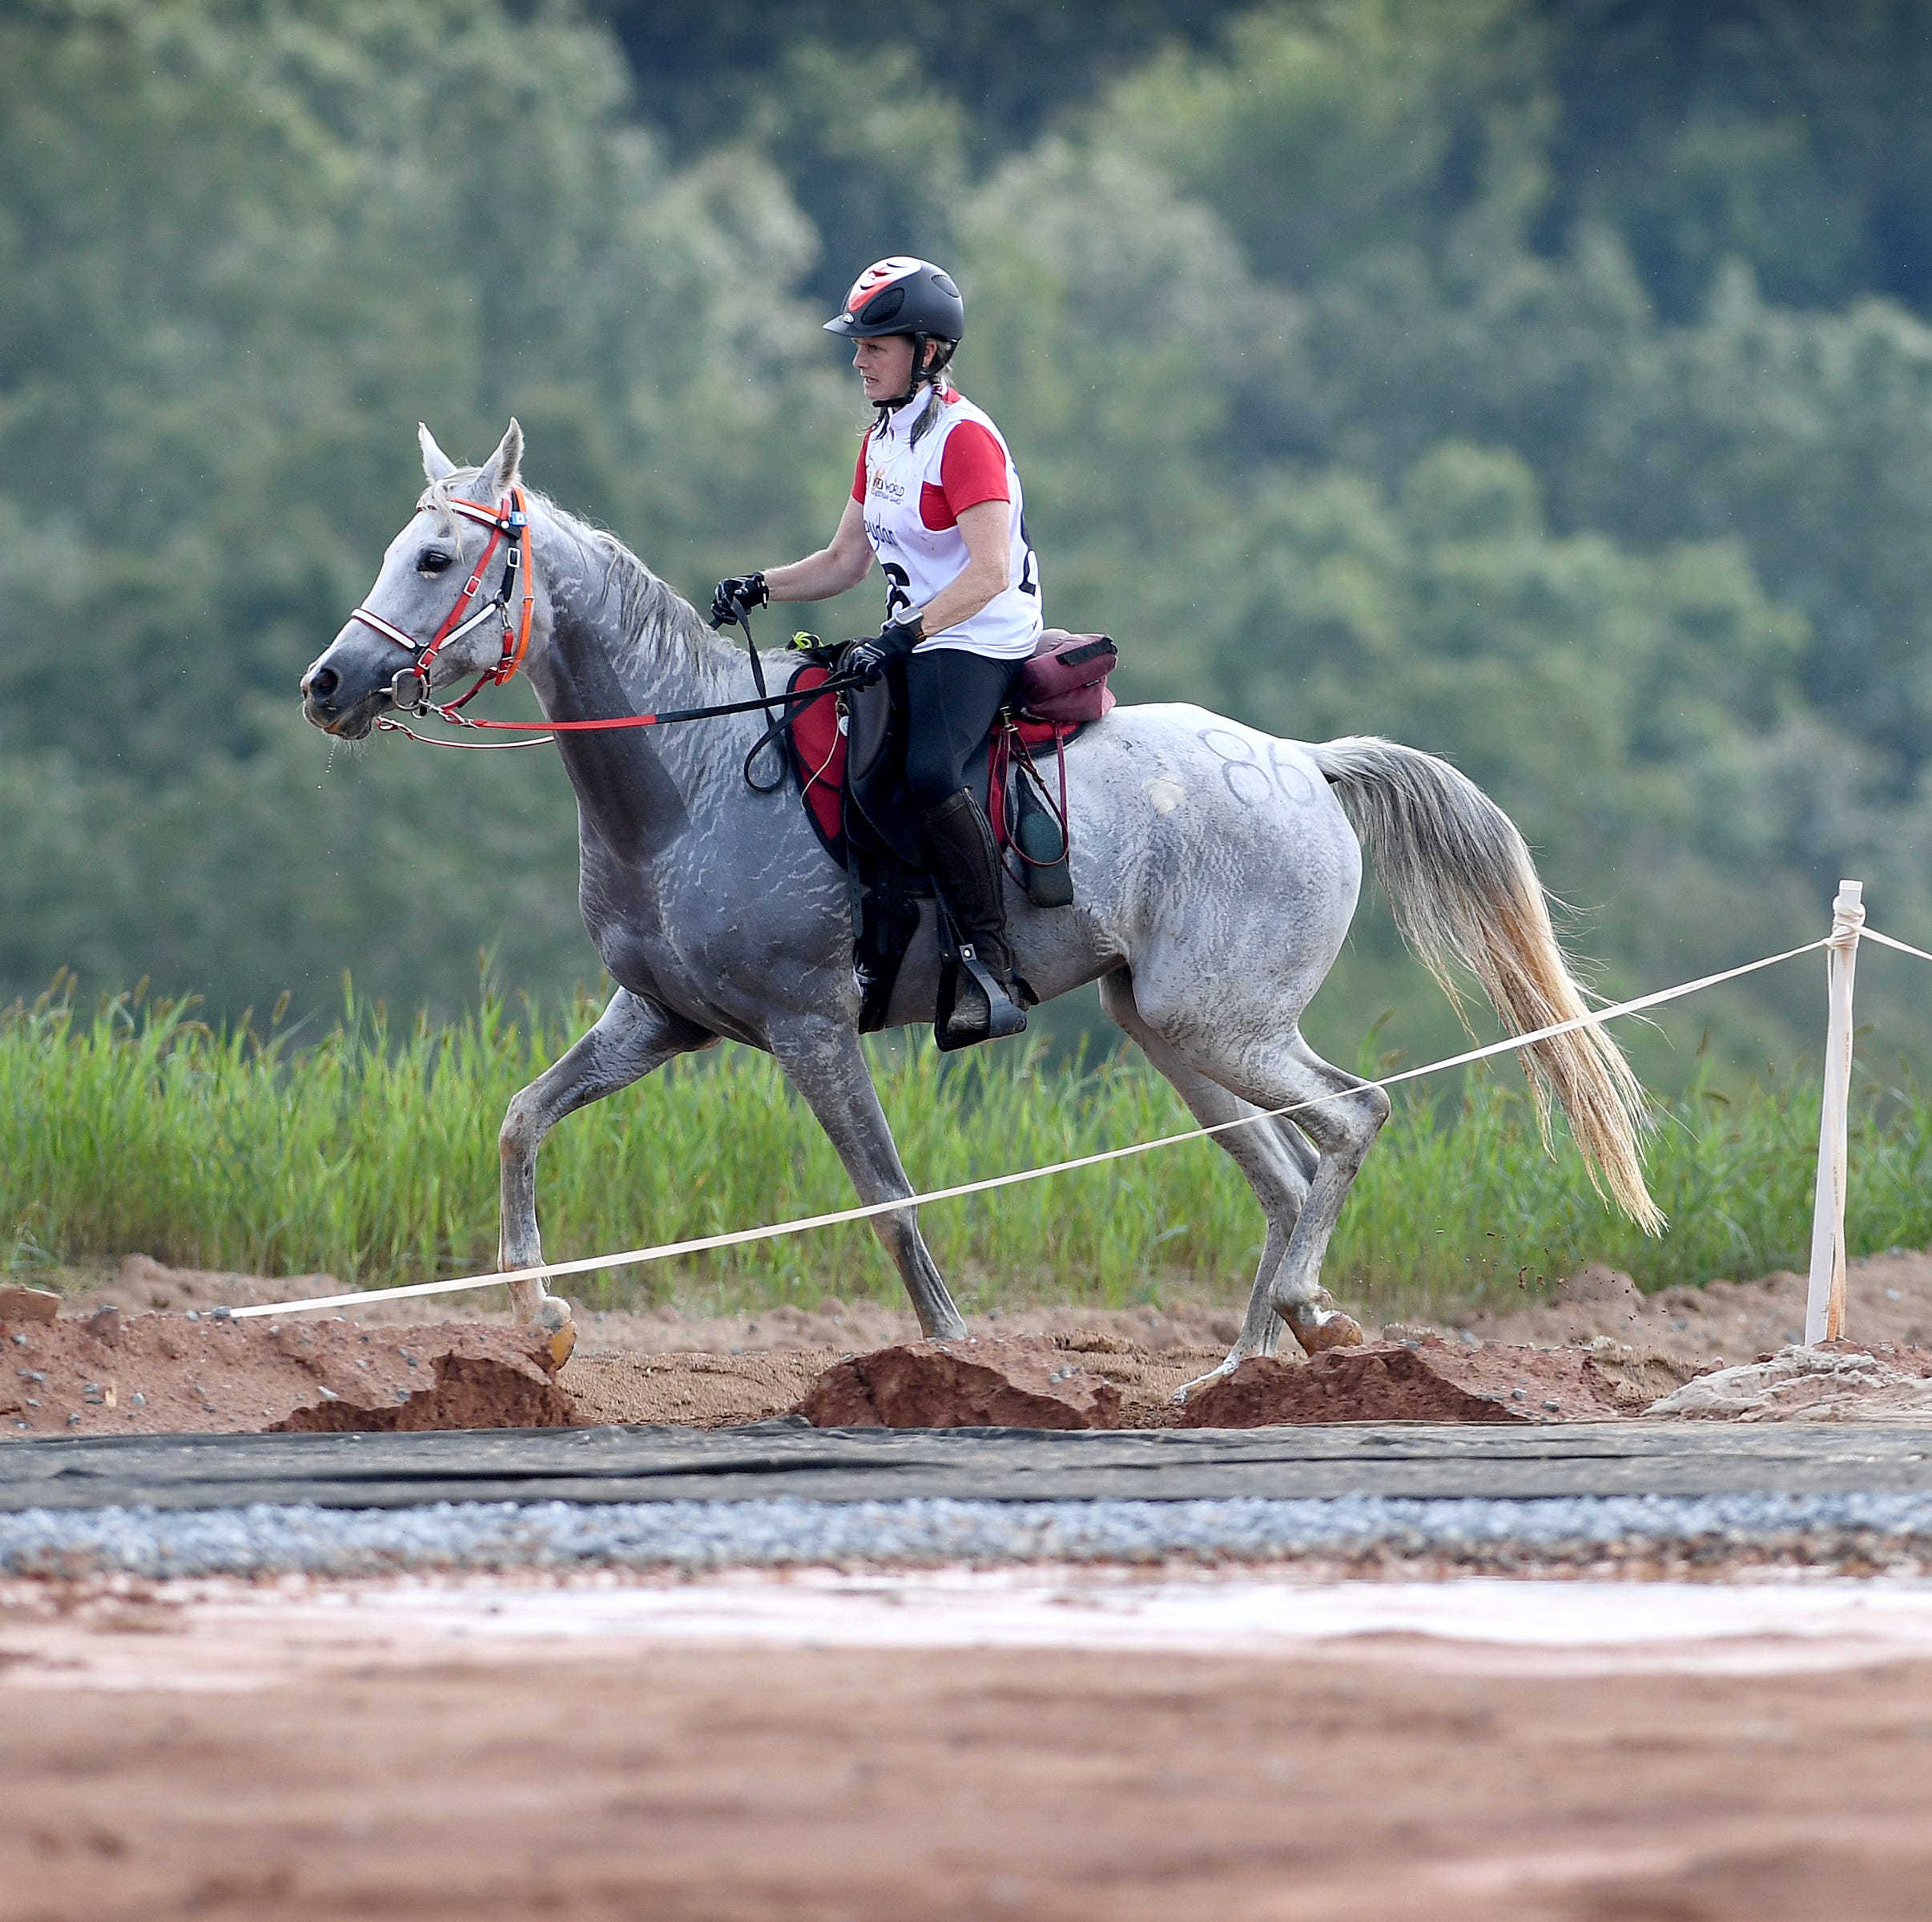 Tryon International Equestrian Center violates animal waste disposal regulations